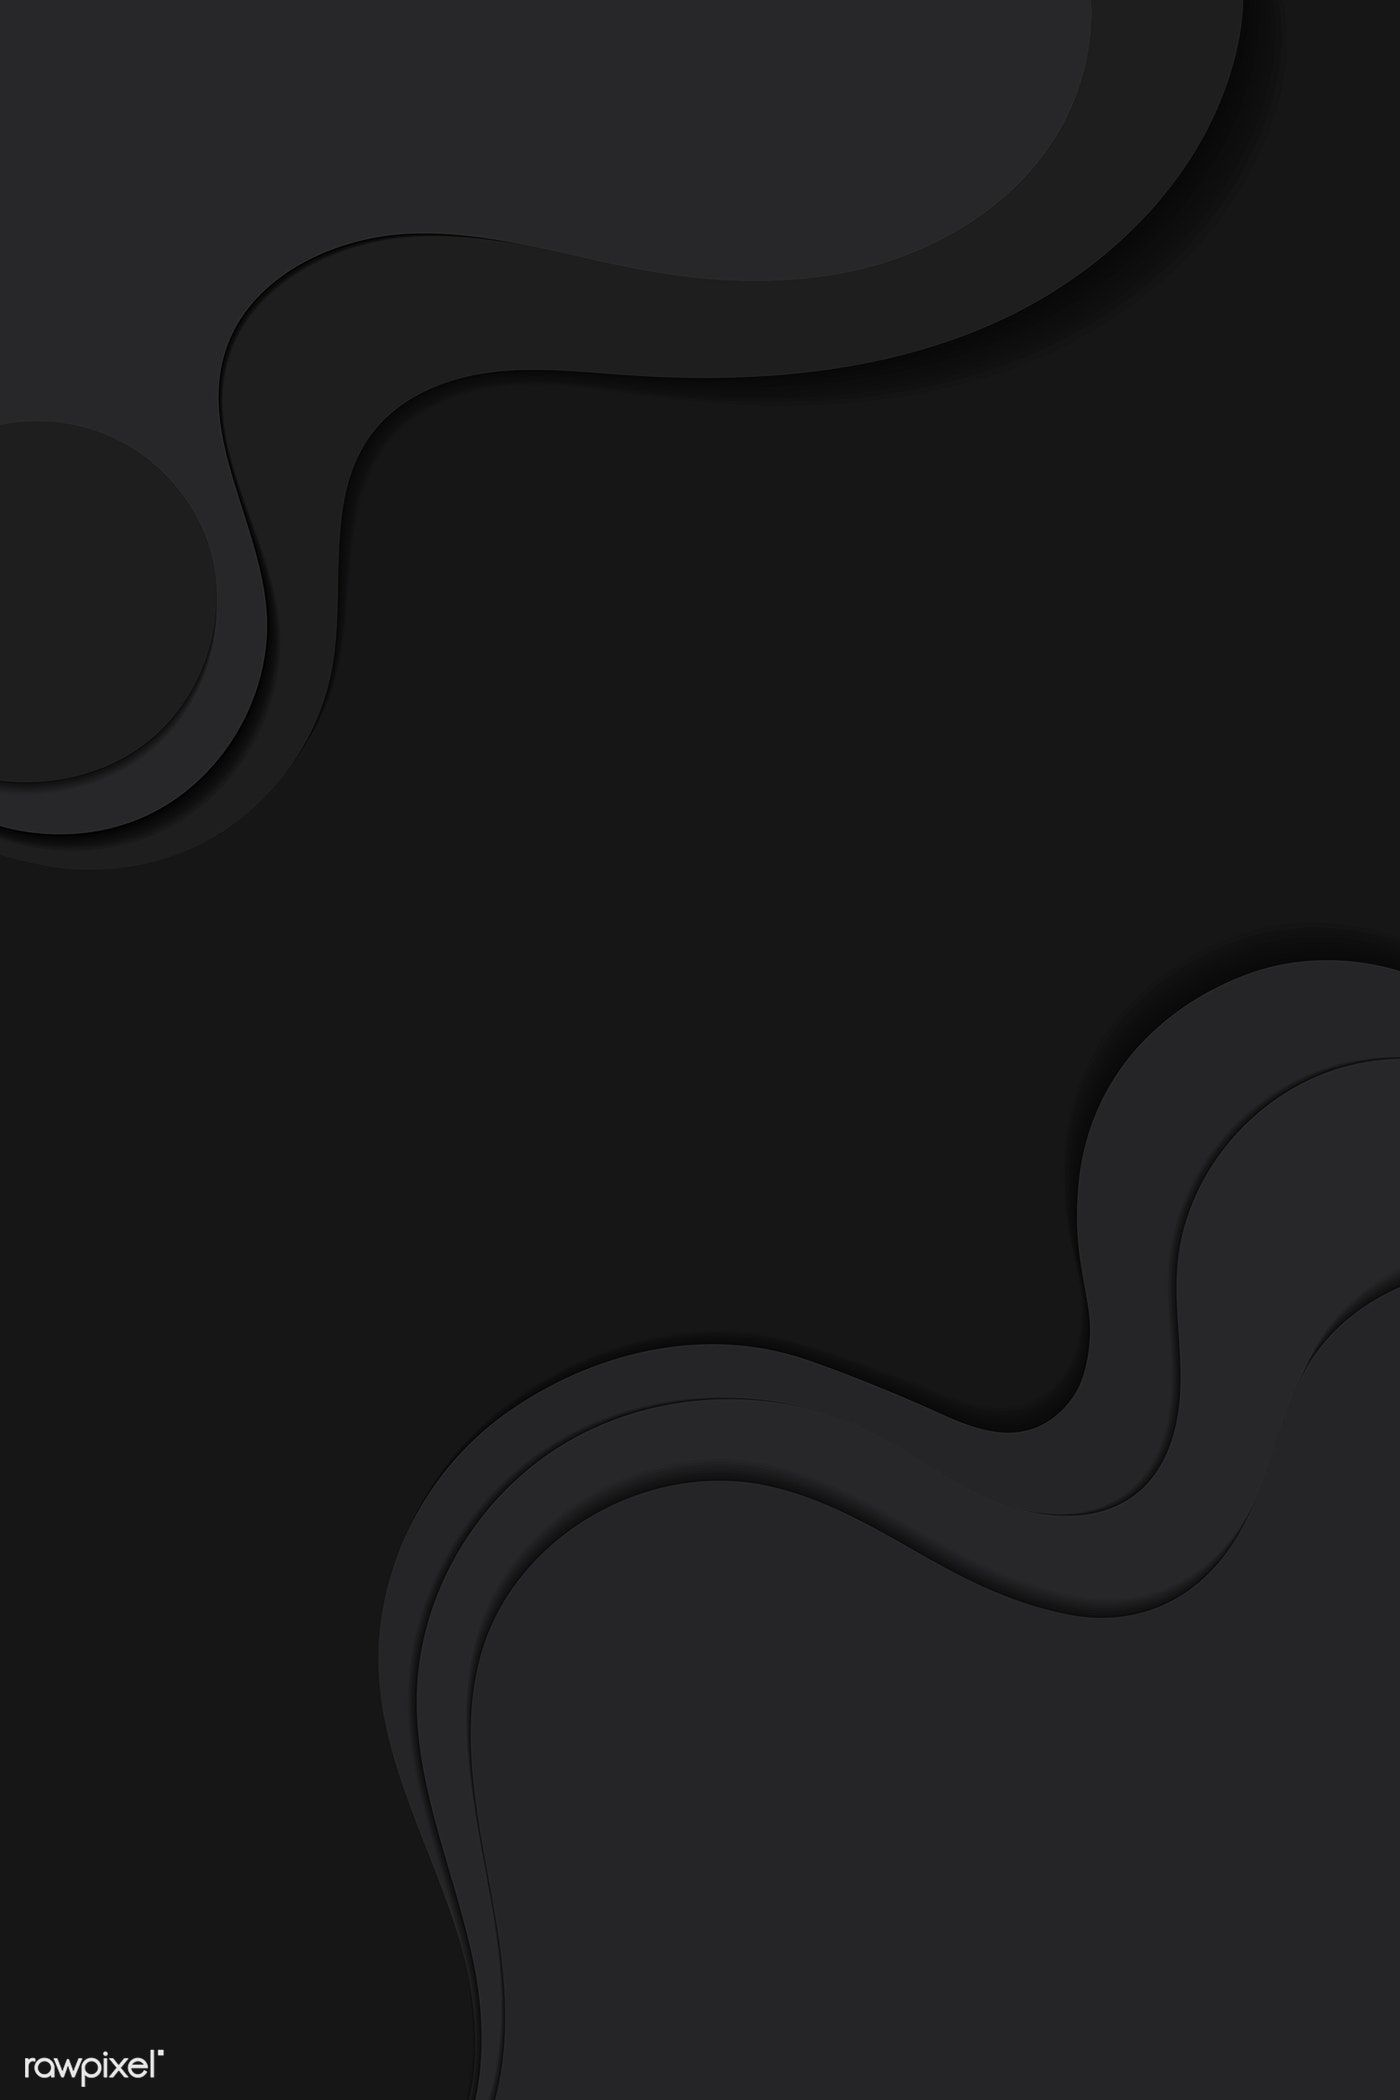 Download premium vector of Abstract black curve background vector by sasi about 2050255, abstract, banner, dark bg and dark background 2050255